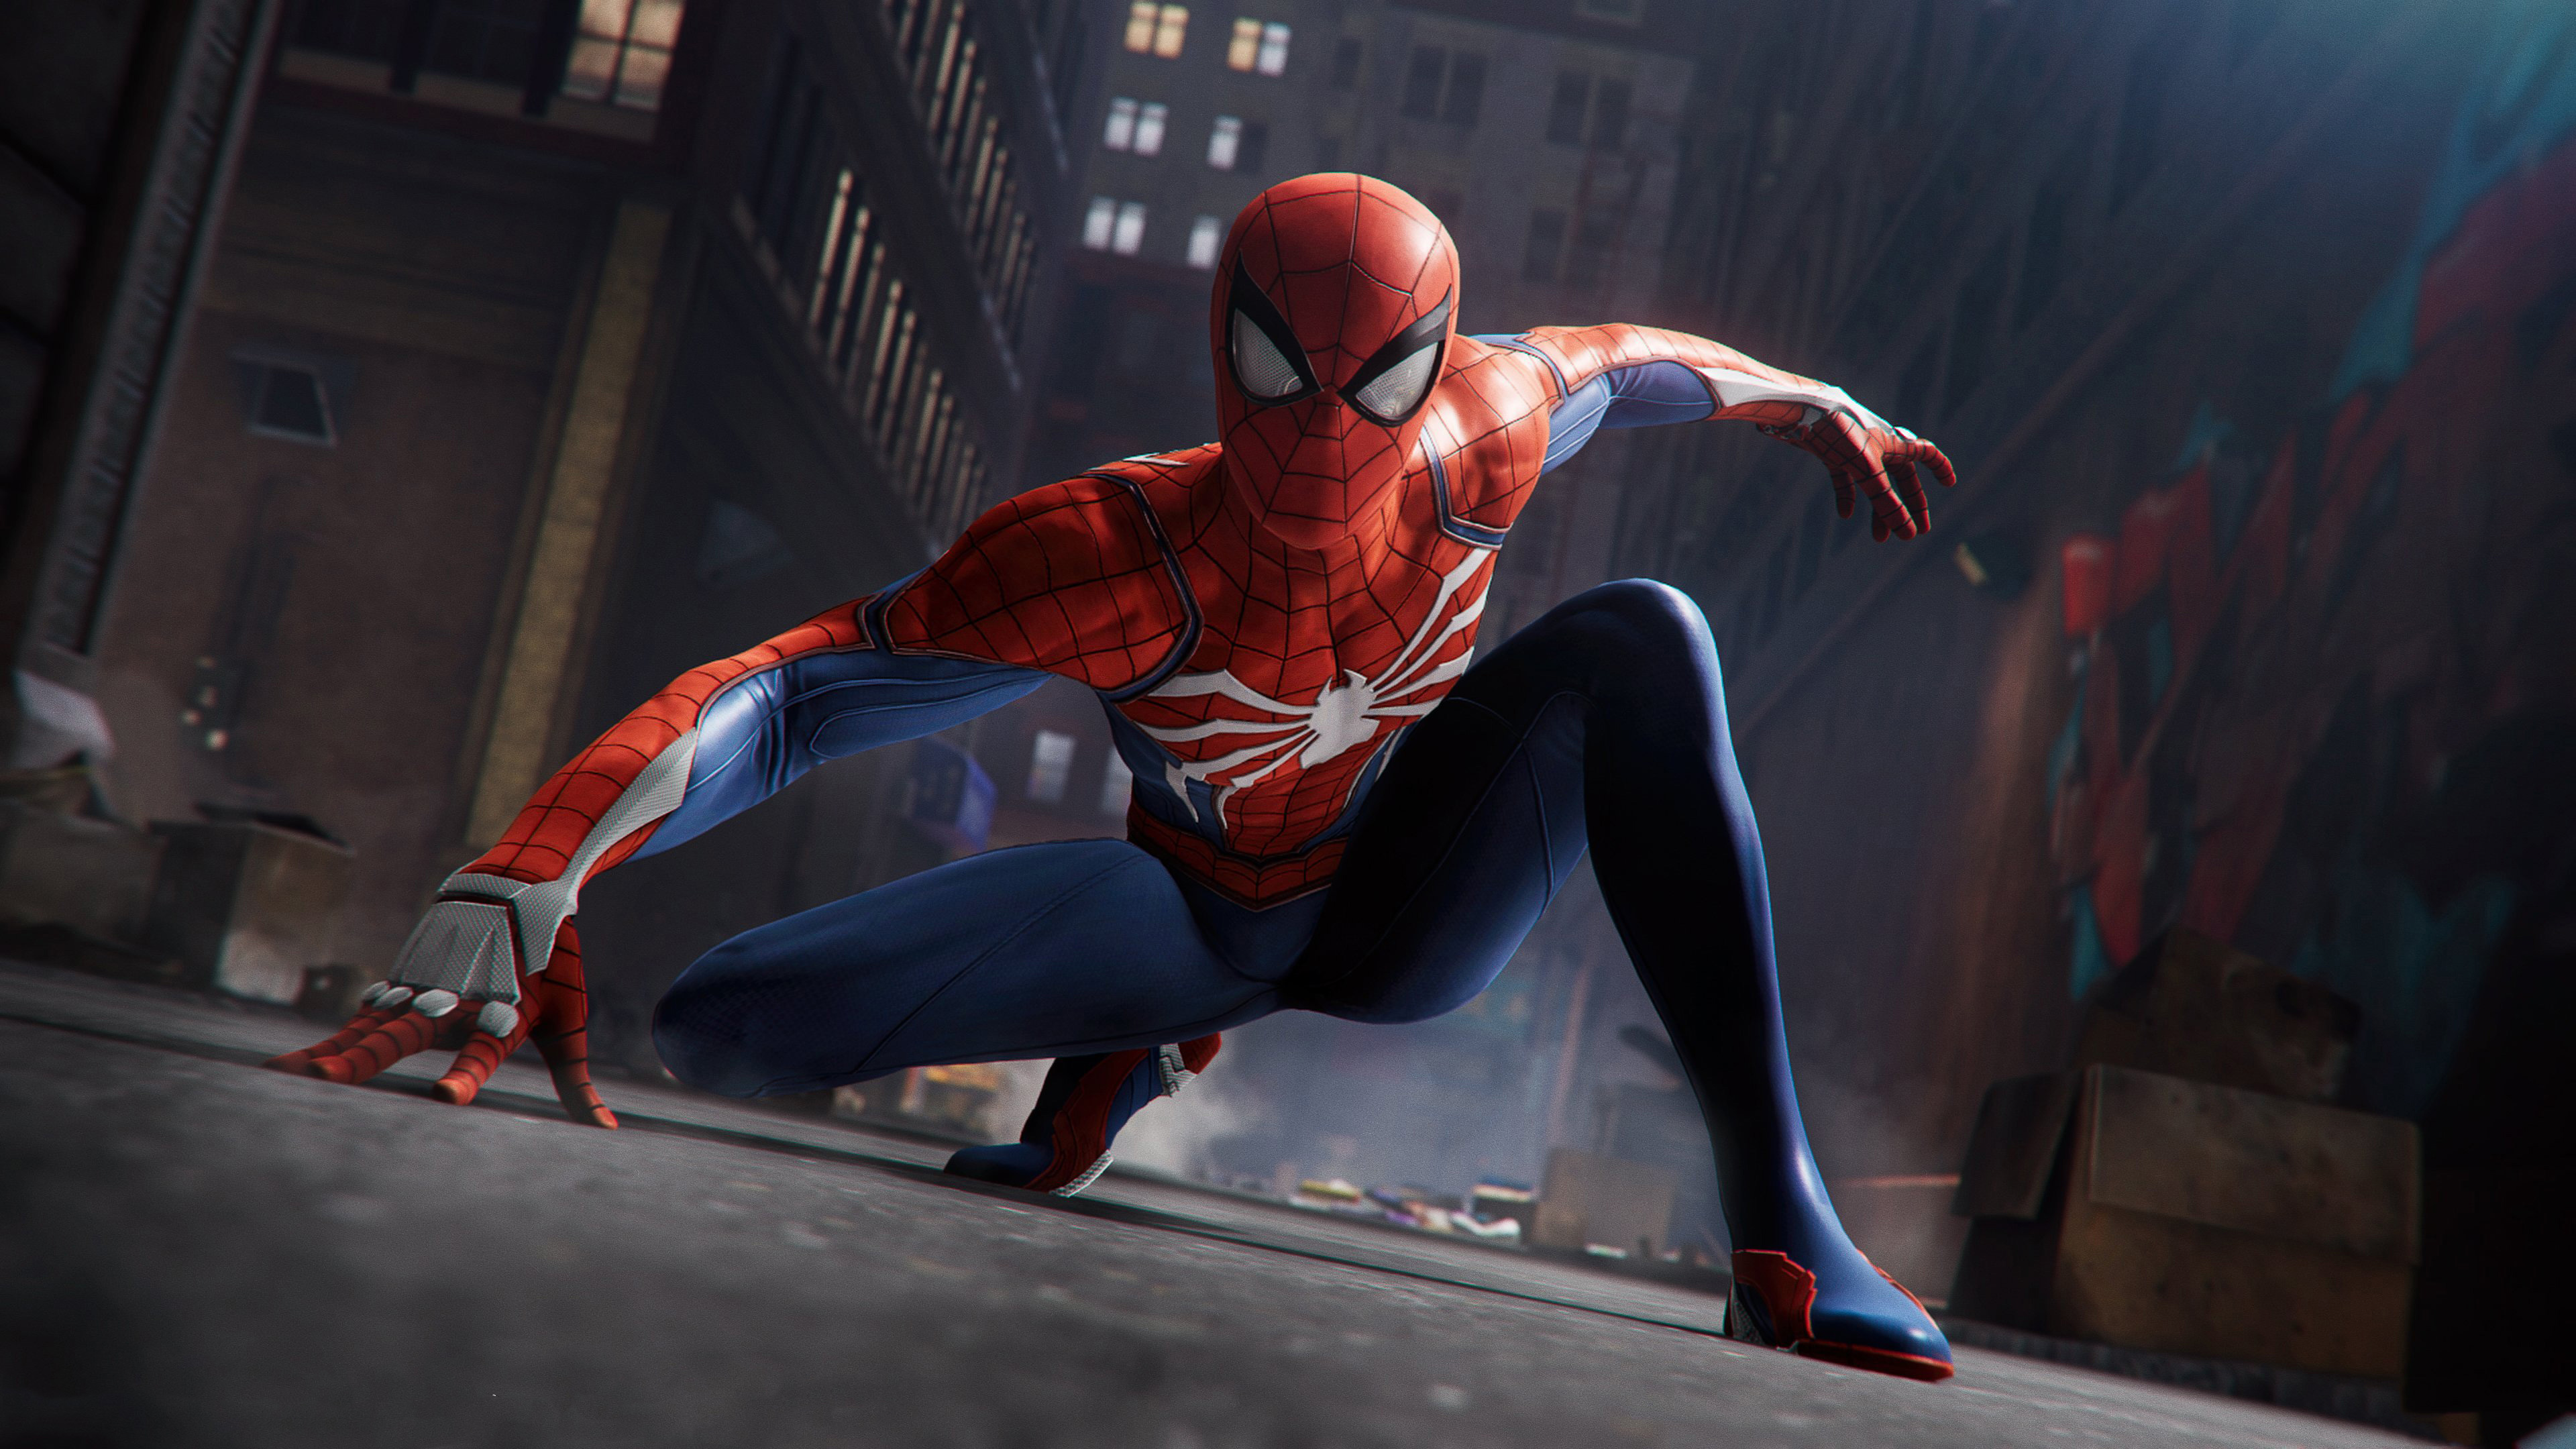 Spiderman Game Ps4 Xbox One 4k Wallpaper Best Wallpapers